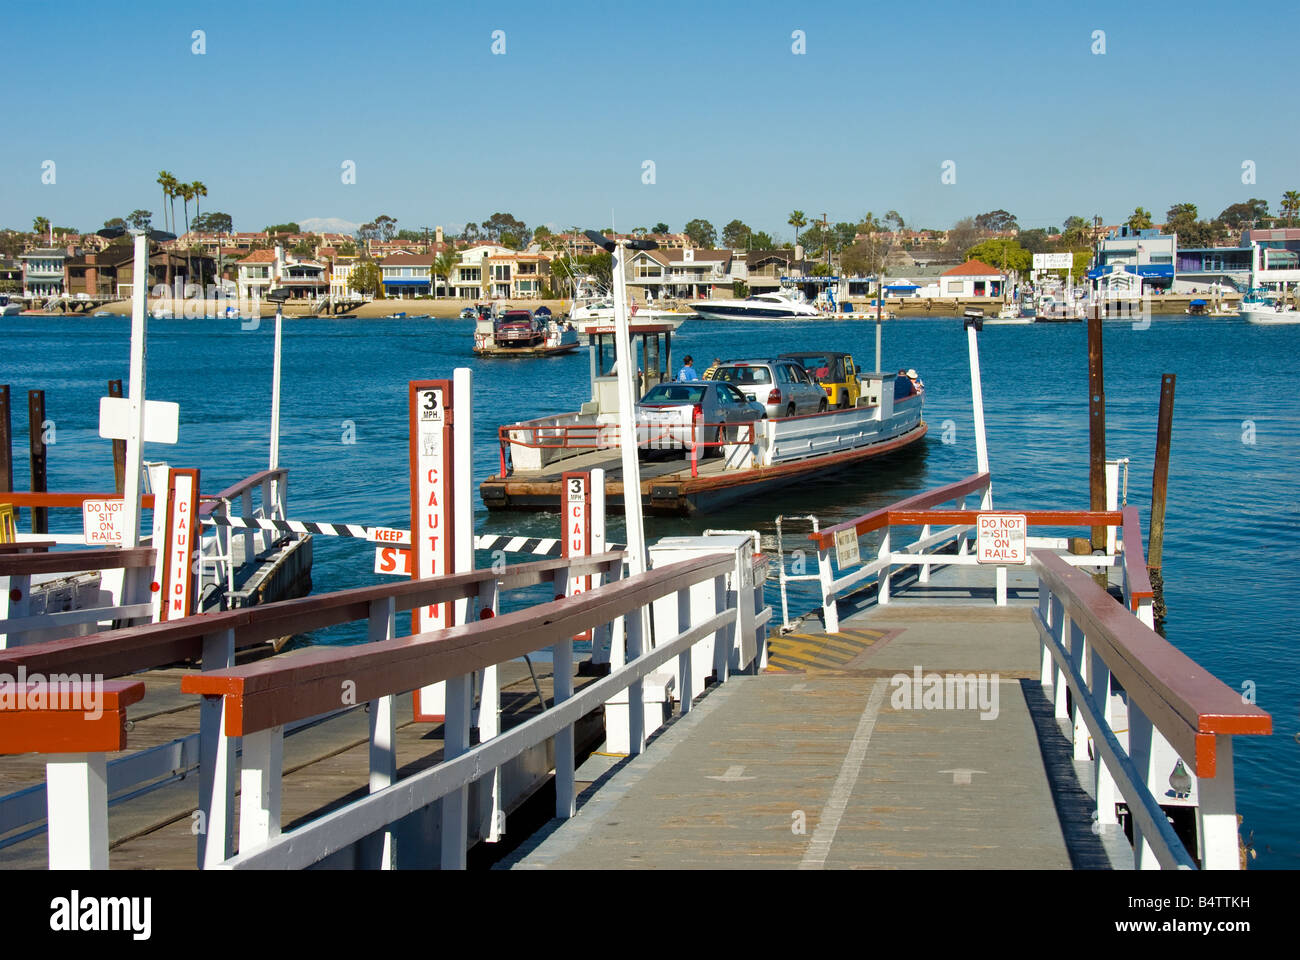 ferry ride to Balboa Island, in the middle of Newport Bay Newport Beach California usa - Stock Image